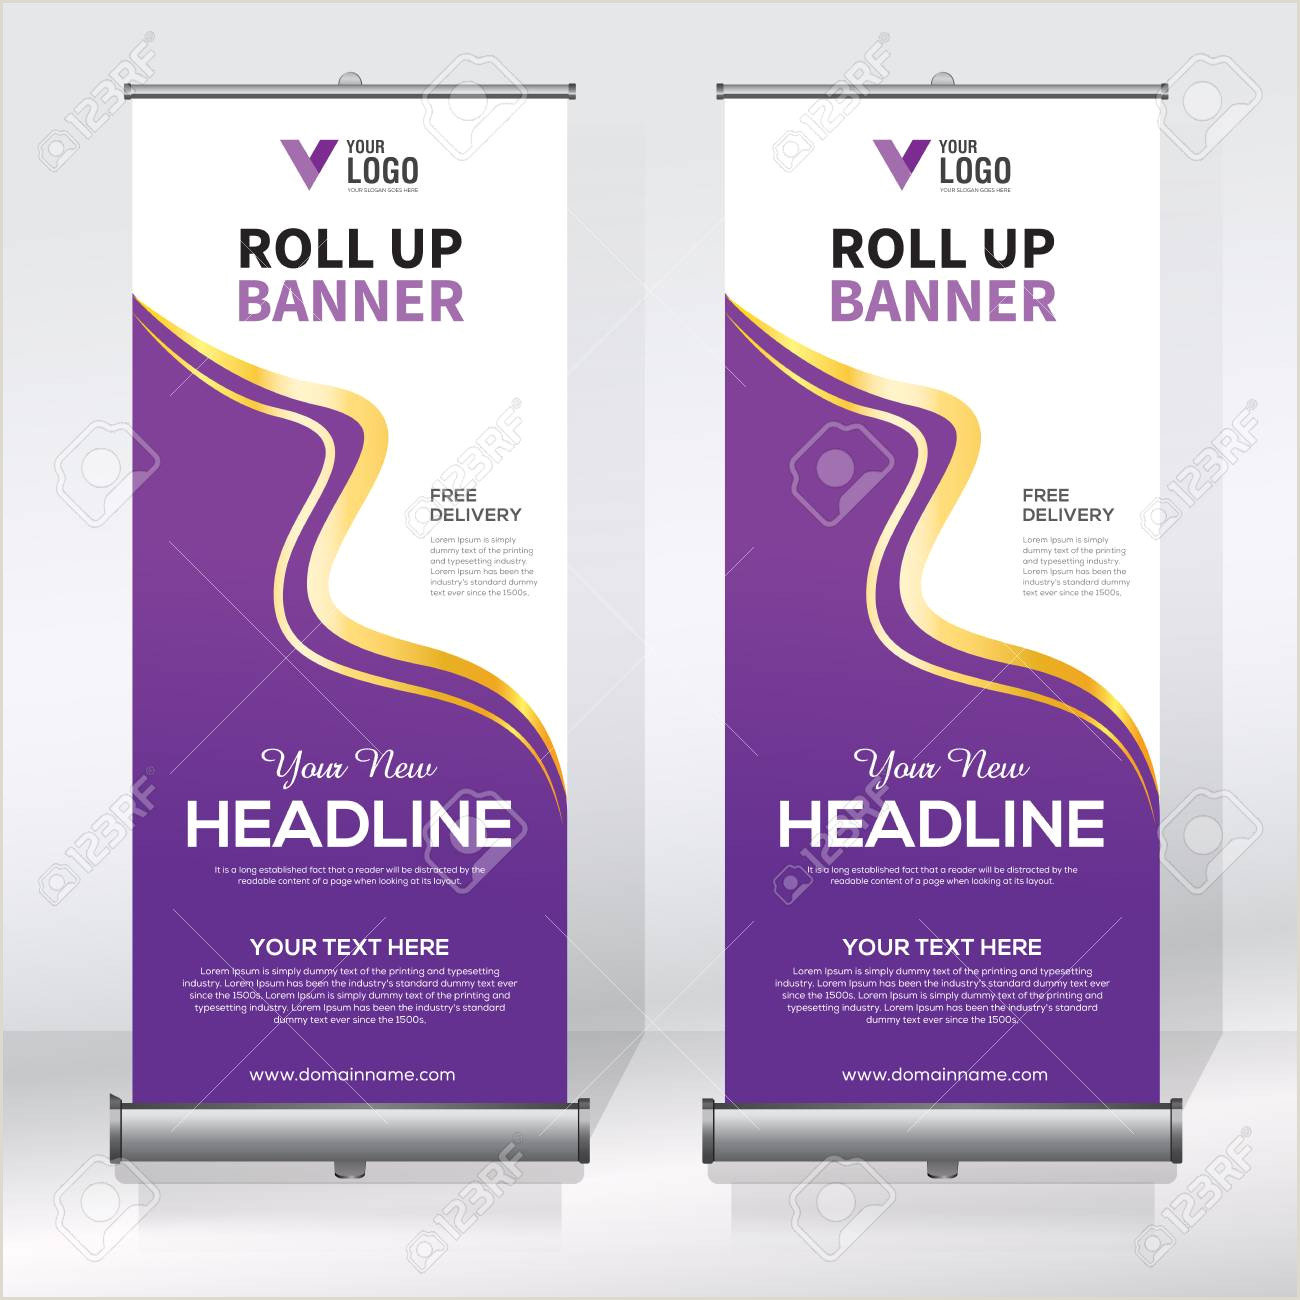 Pull Up Banner Dimensions Template Roll Up Banner Design Template Abstract Background Pull Up